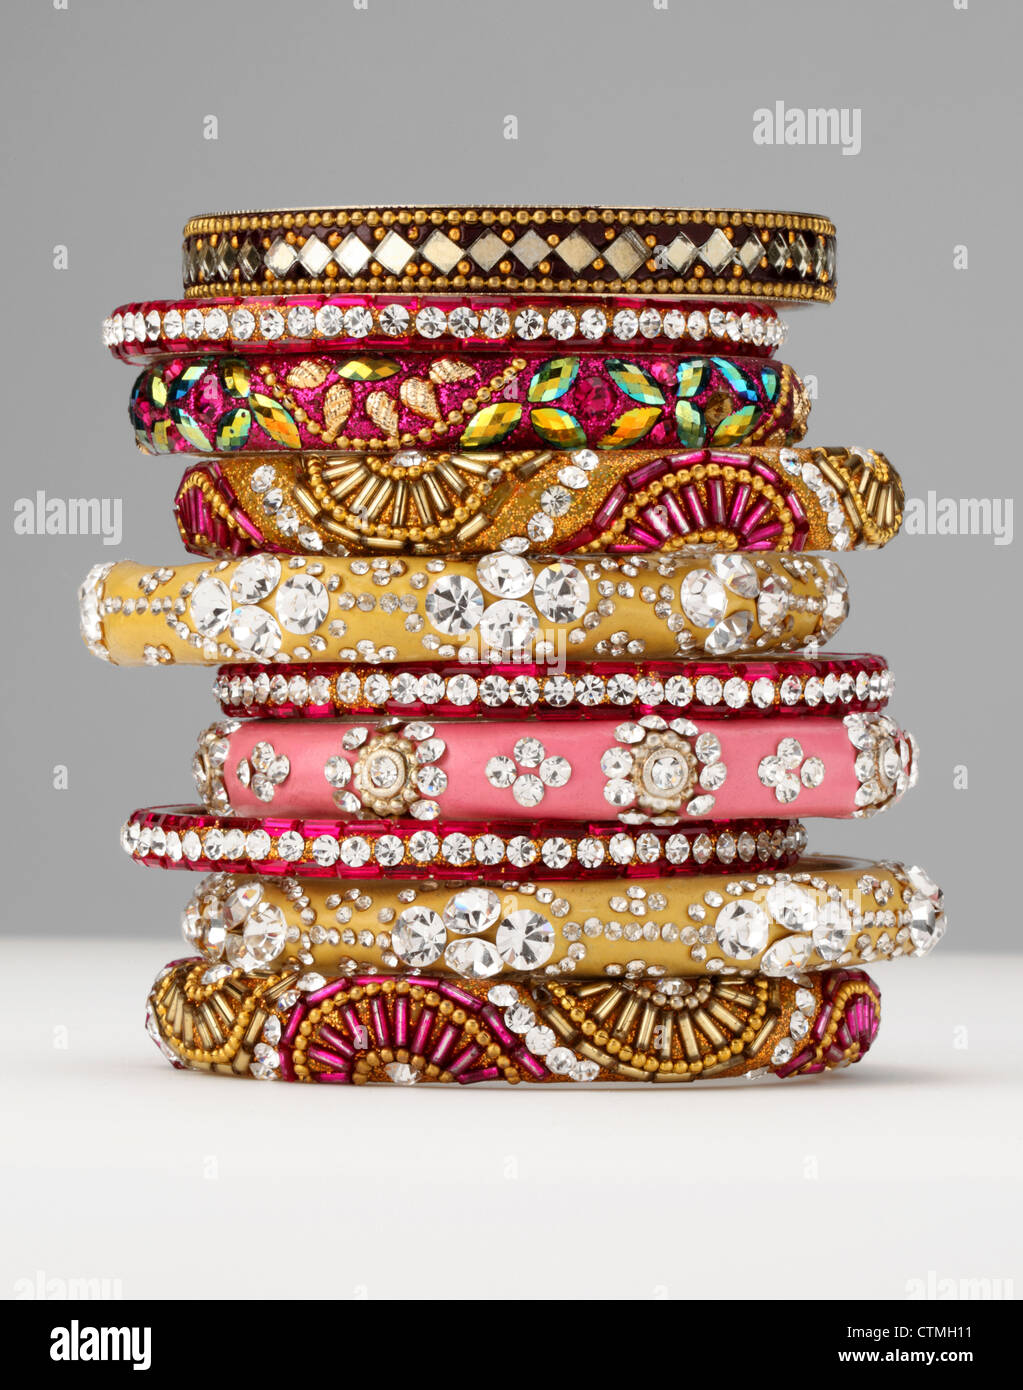 Les Bijoux de costume. Une pile de bracelets colorés. Photo Stock